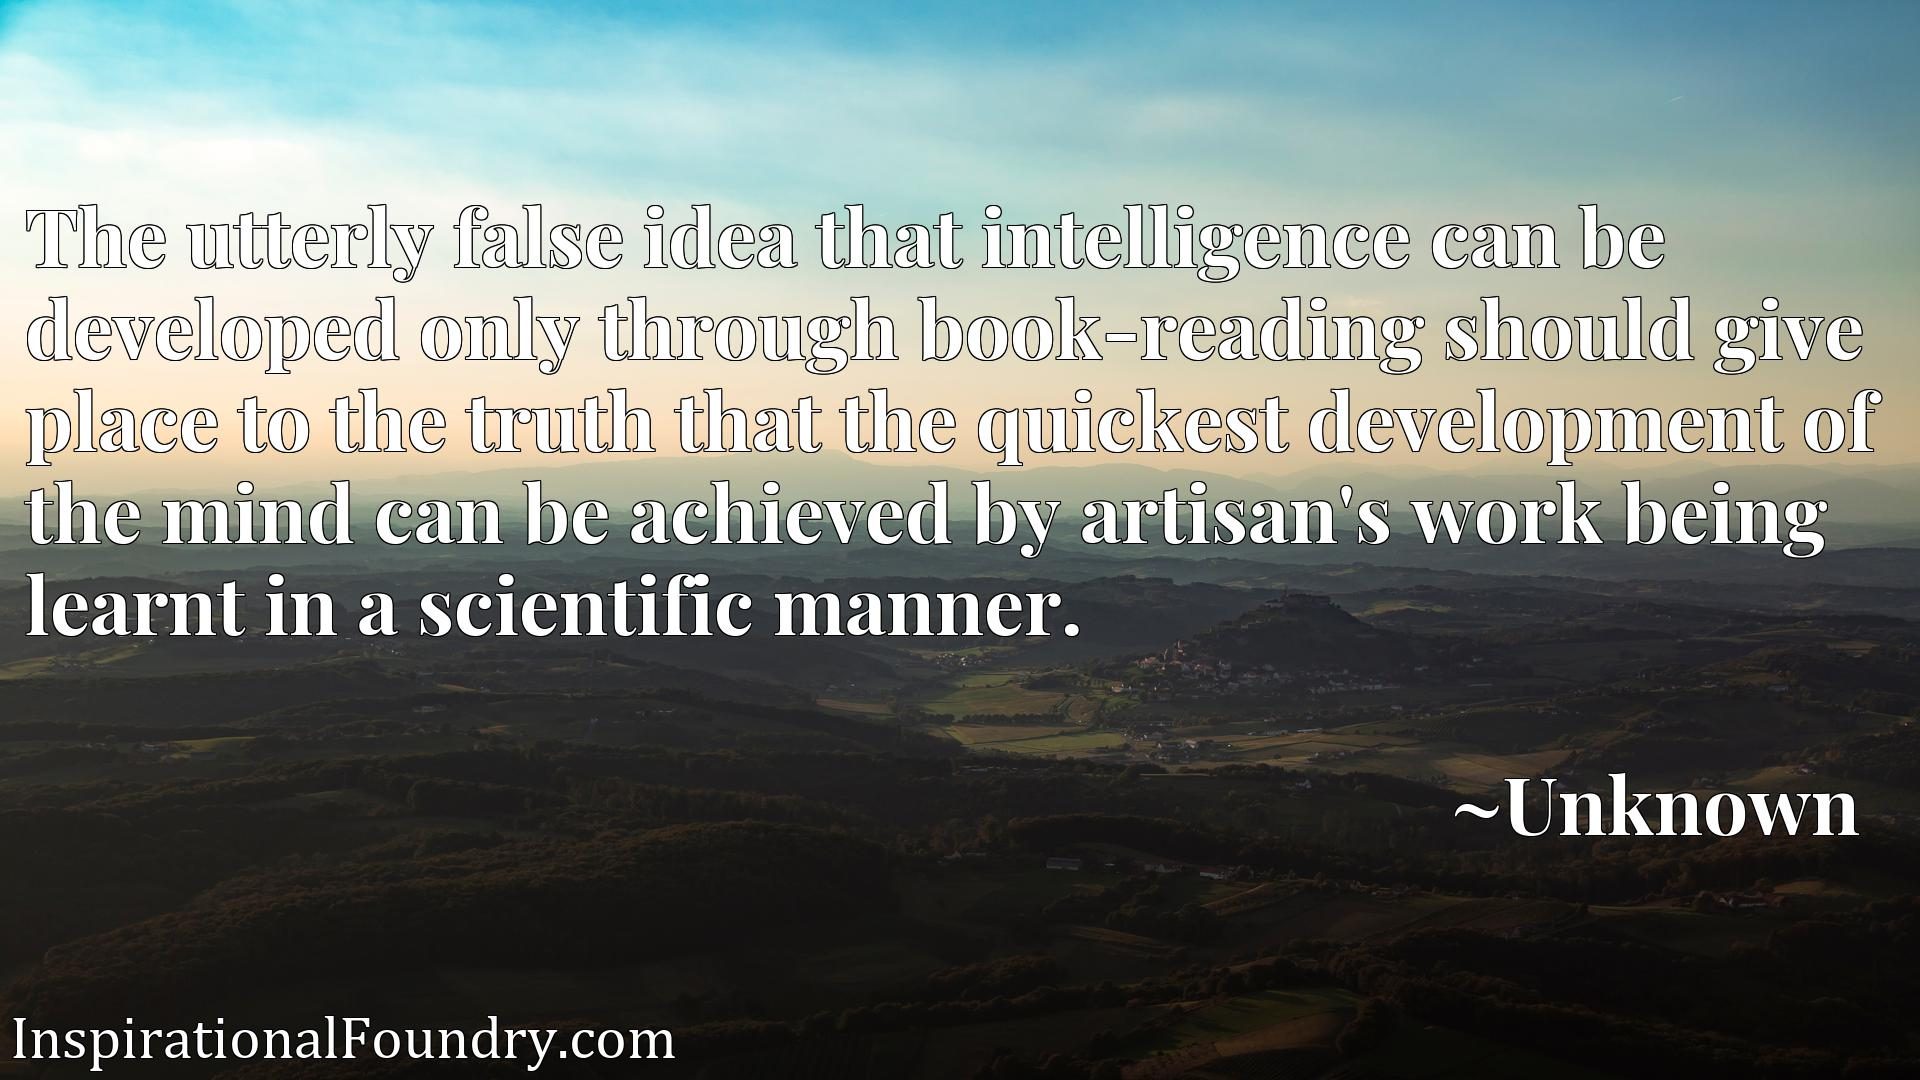 Quote Picture :The utterly false idea that intelligence can be developed only through book-reading should give place to the truth that the quickest development of the mind can be achieved by artisan's work being learnt in a scientific manner.